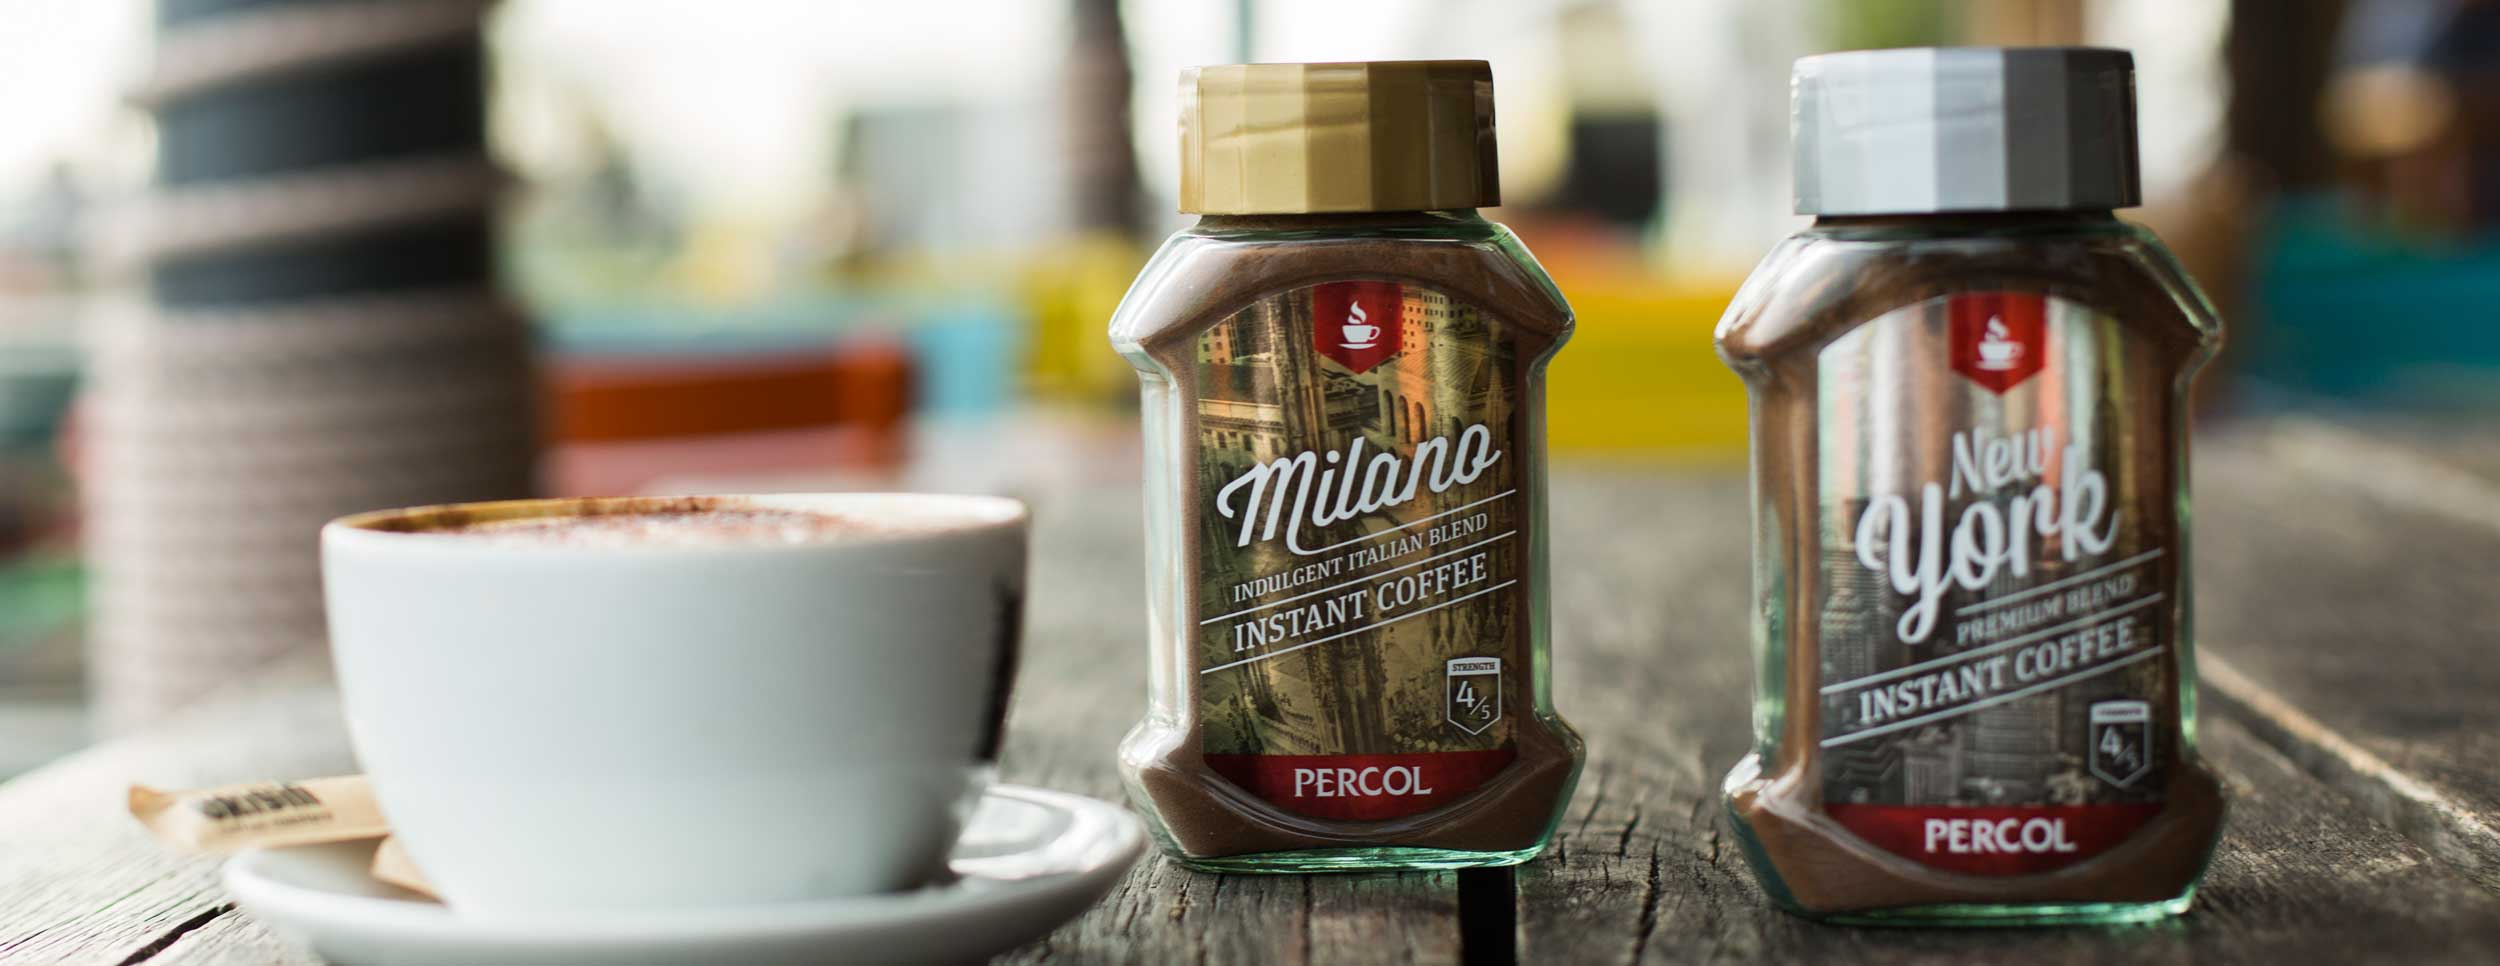 Design and branding for Percol Coffee